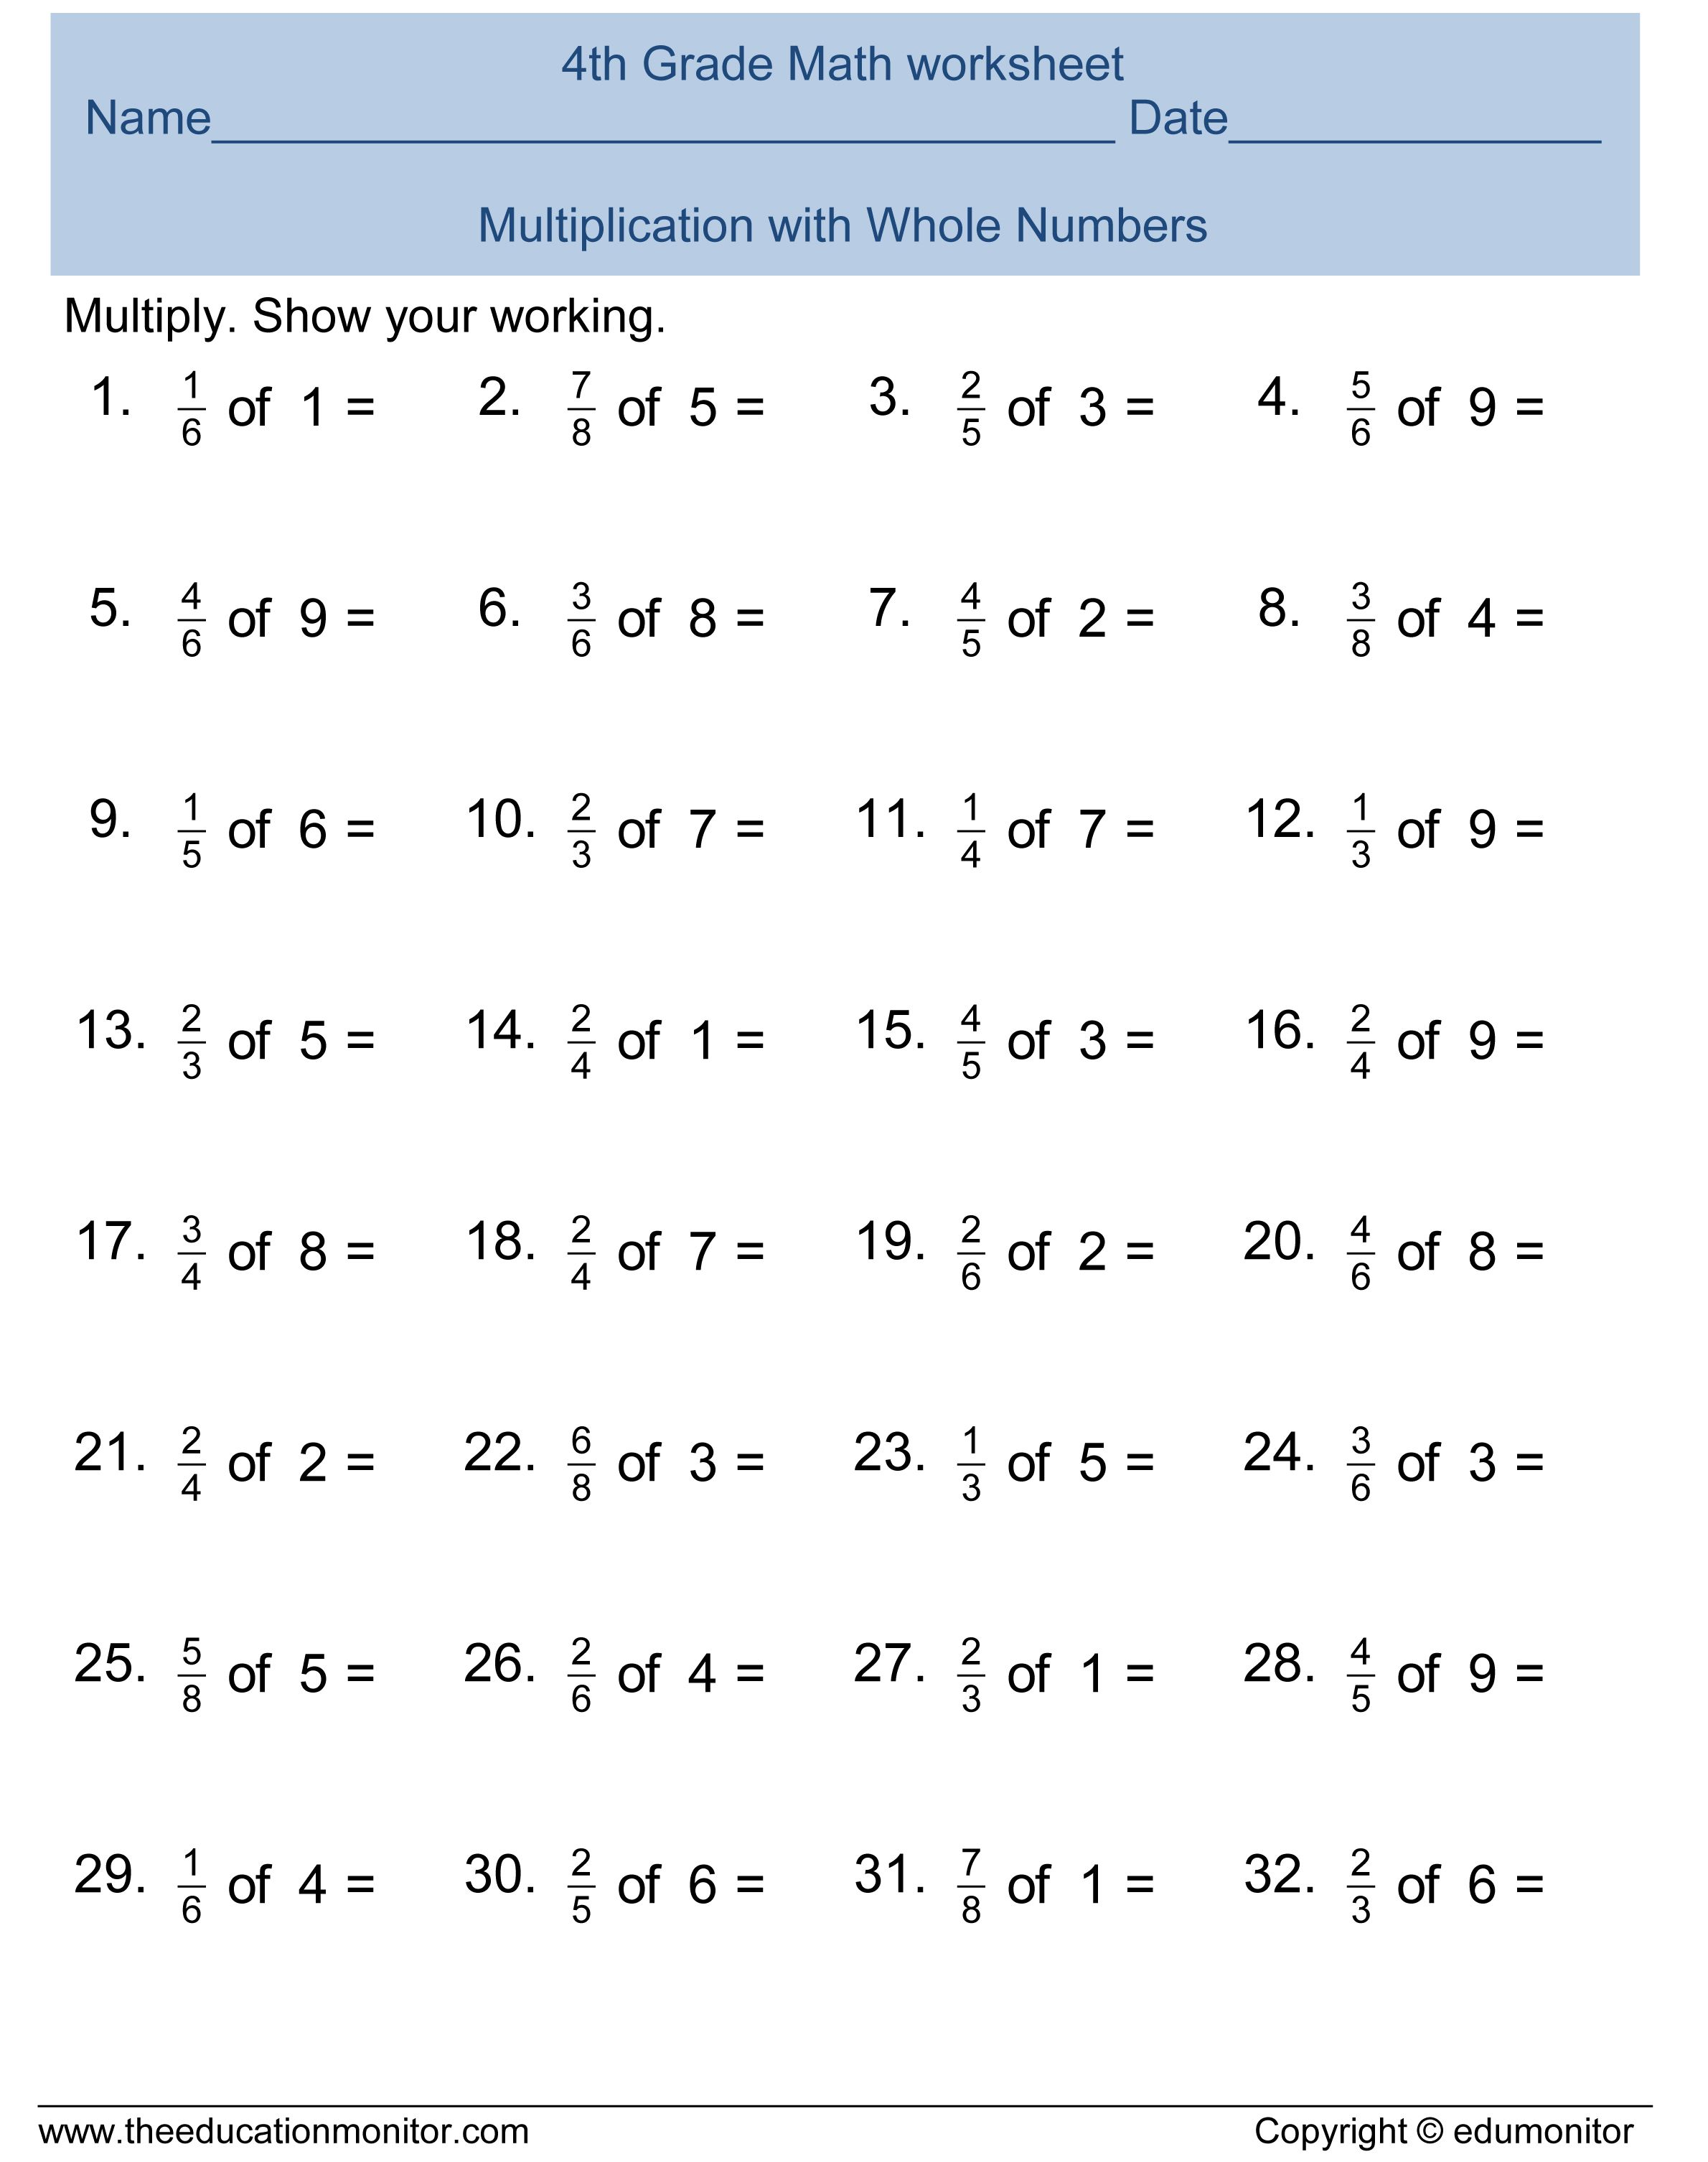 Image Result For Fractions Worksheets Grade 4 | 4th Grade